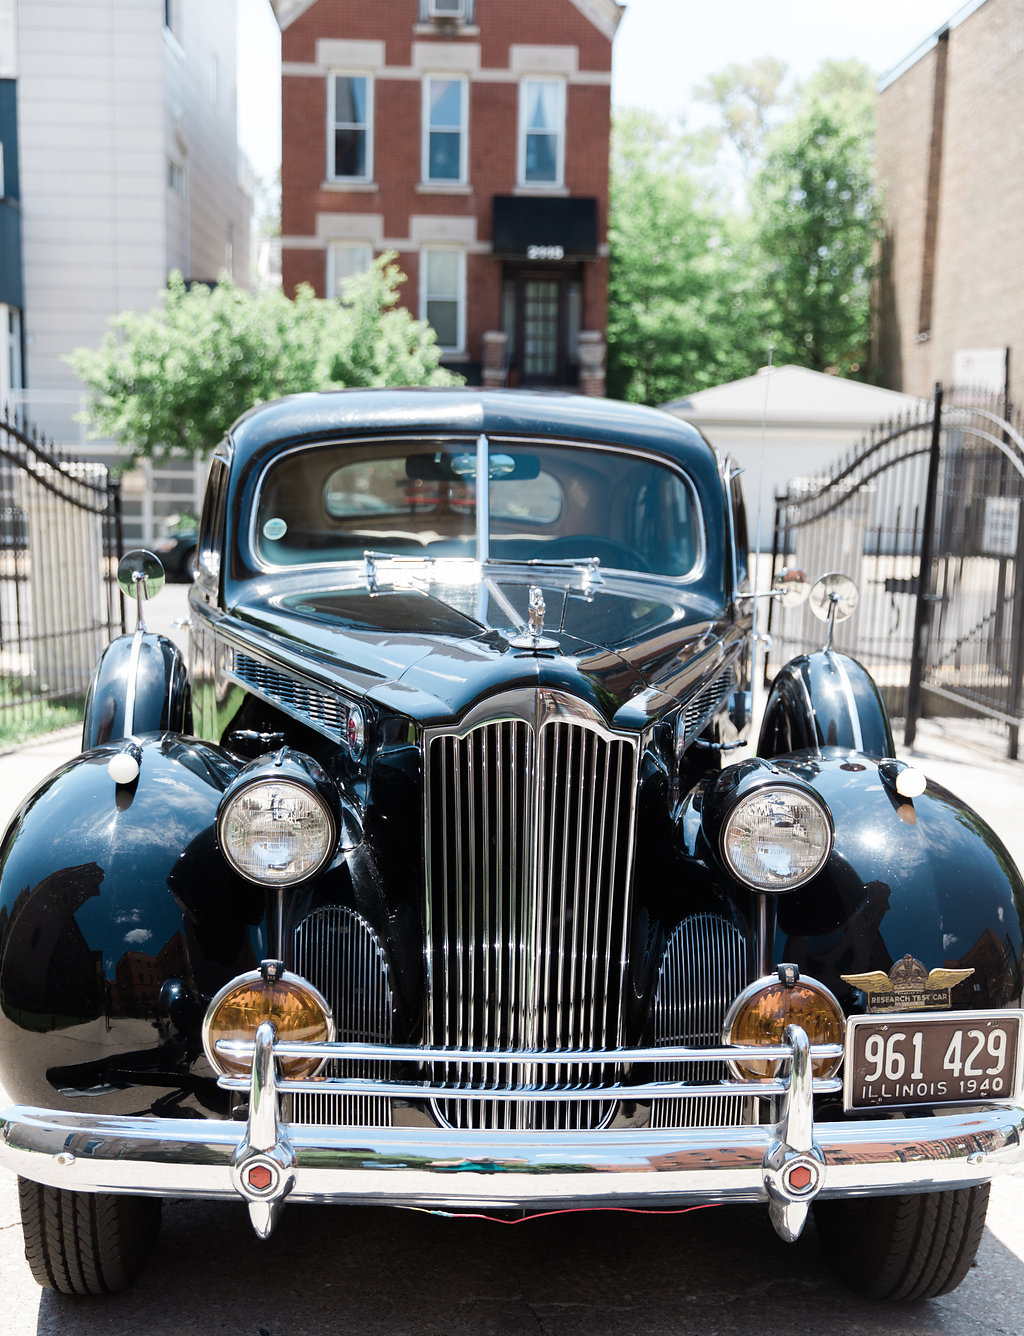 vintage-wedding-car-chicago.jpg